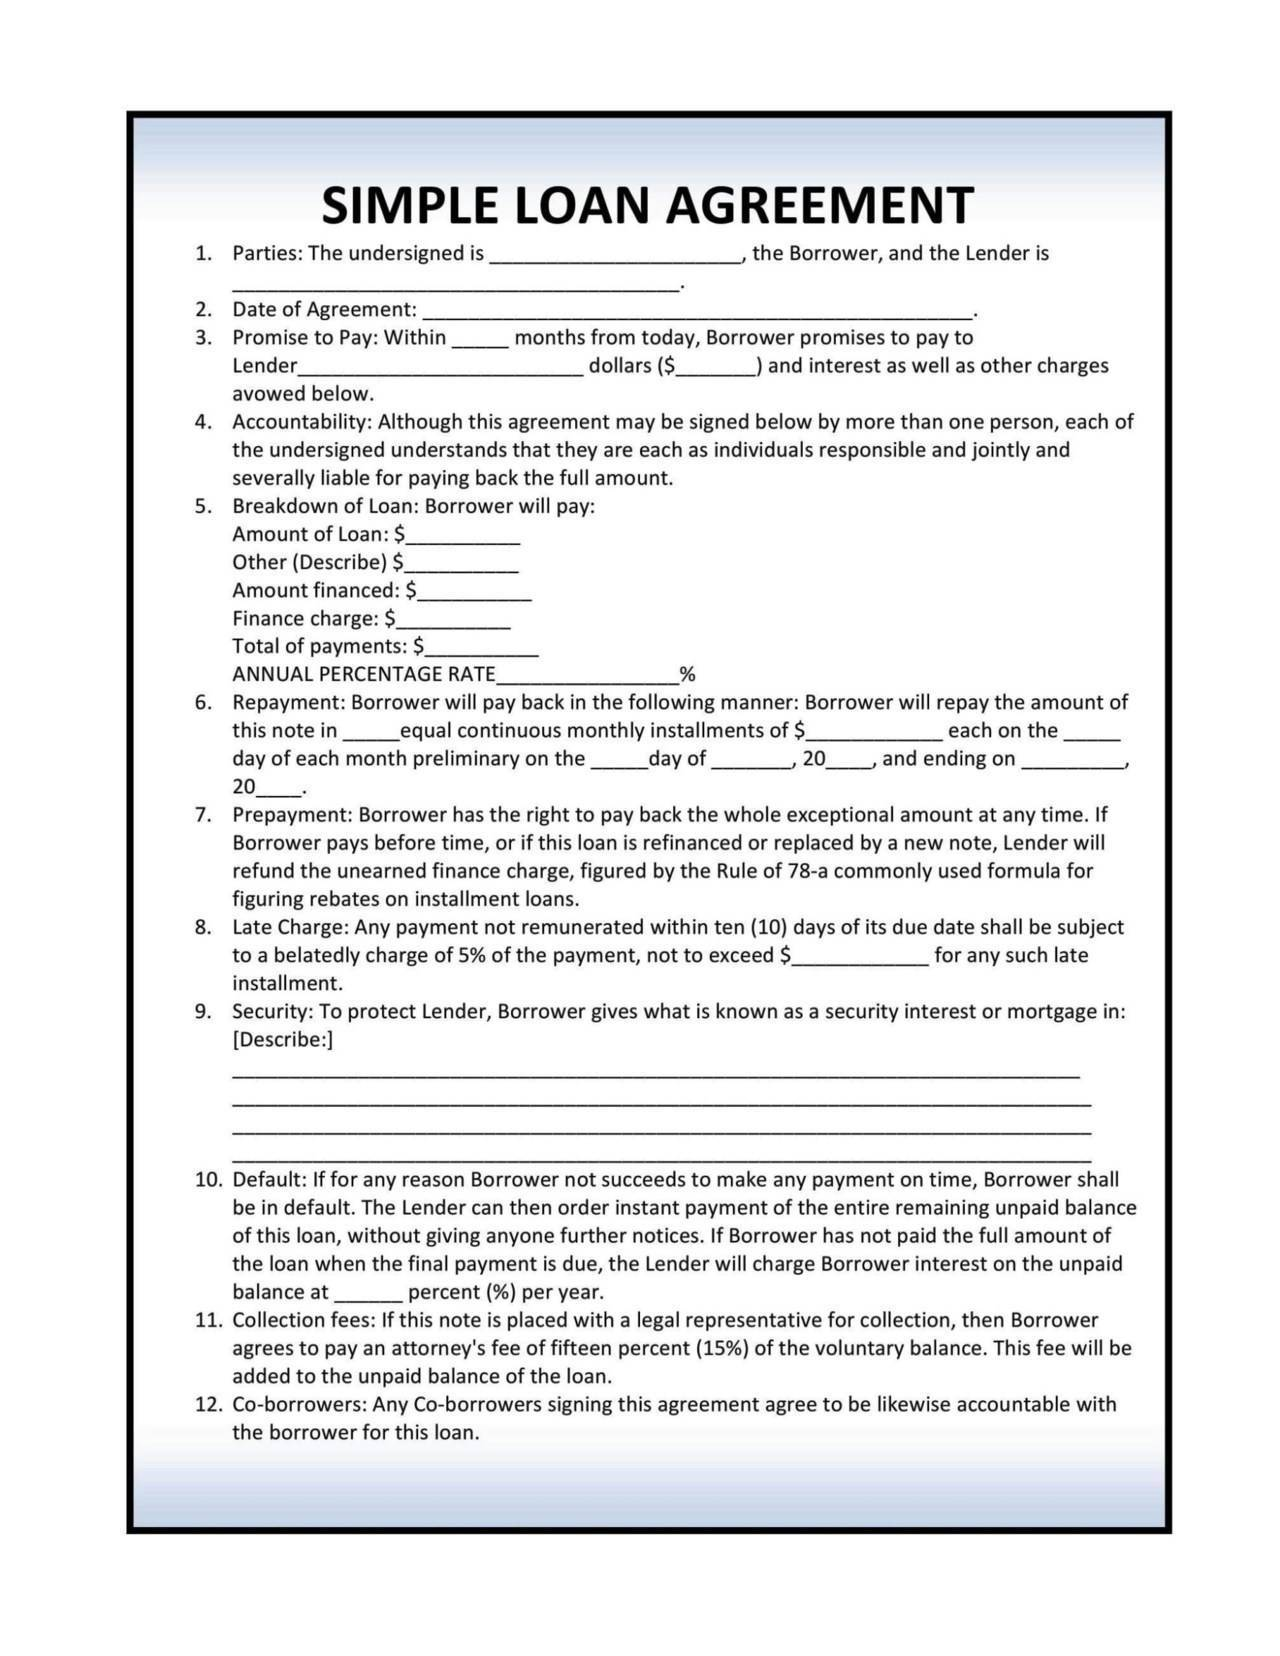 Installment-Loan-Agreement-Template Sample Invoice Letter Template on graphic design, professional service,